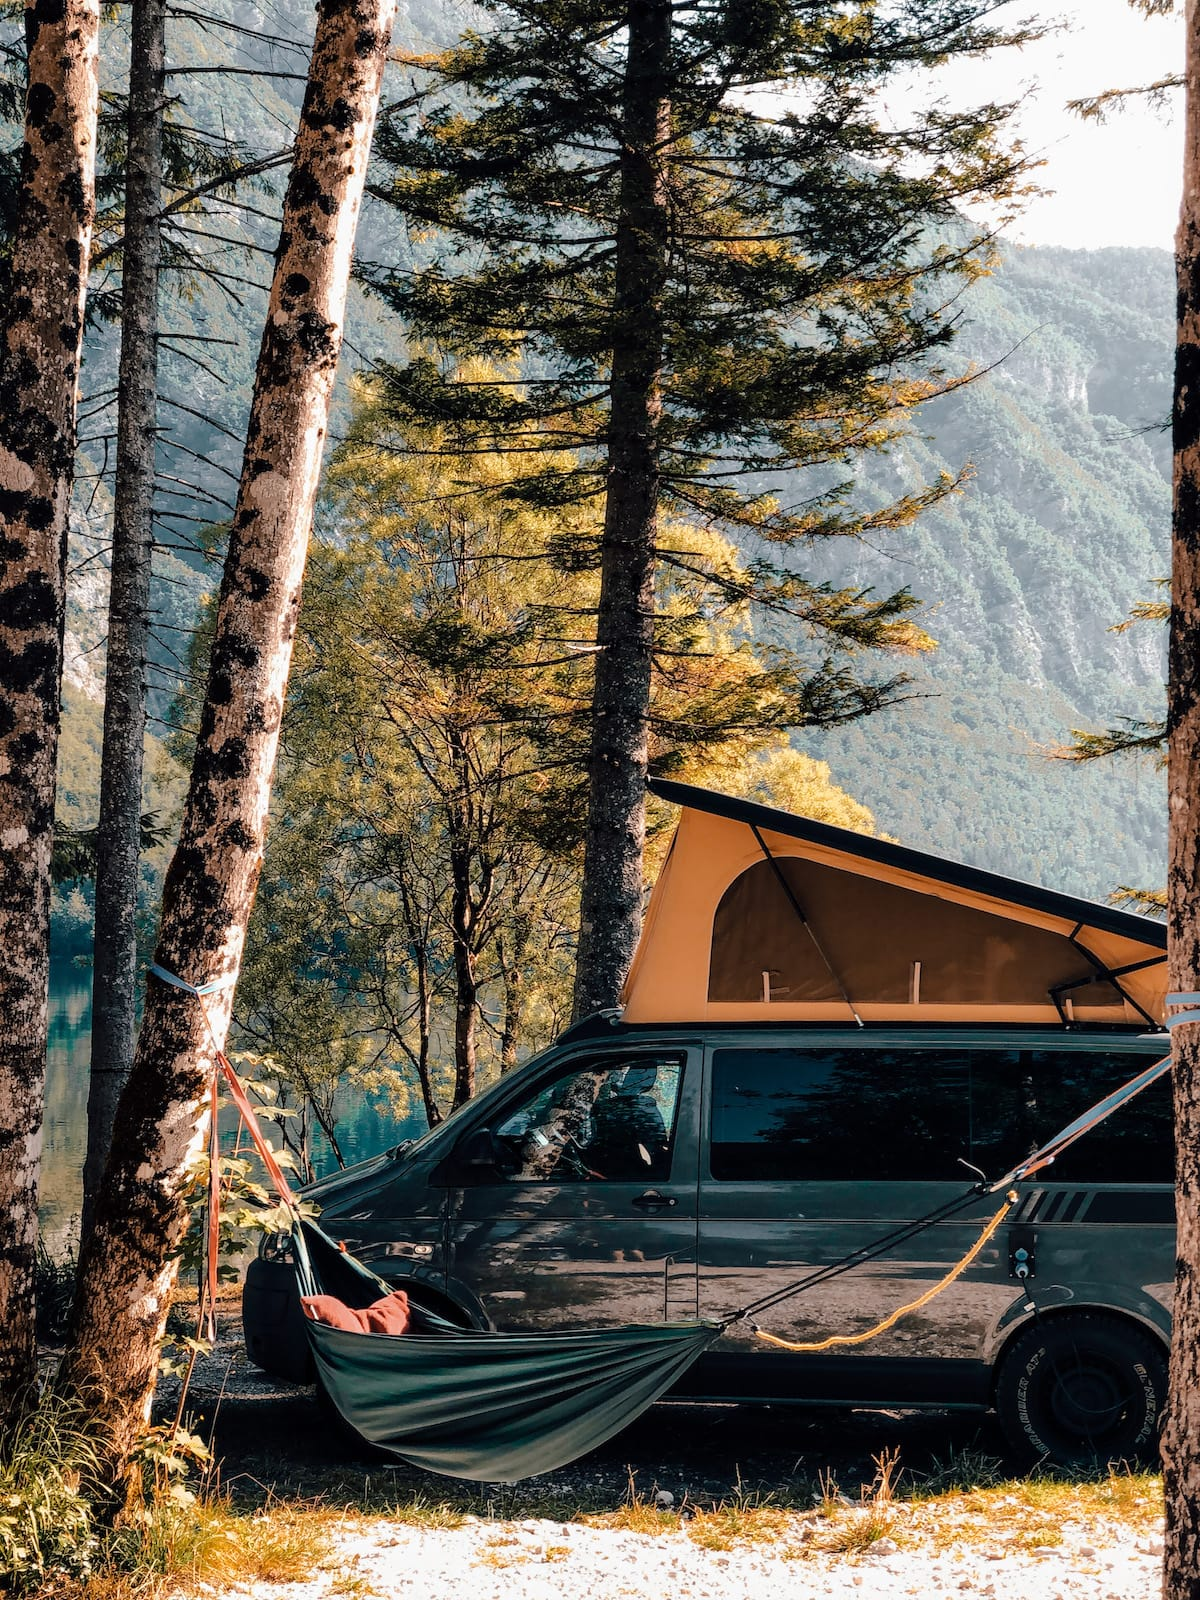 Camping in Slowenien: Route, Campingplätze, Tipps